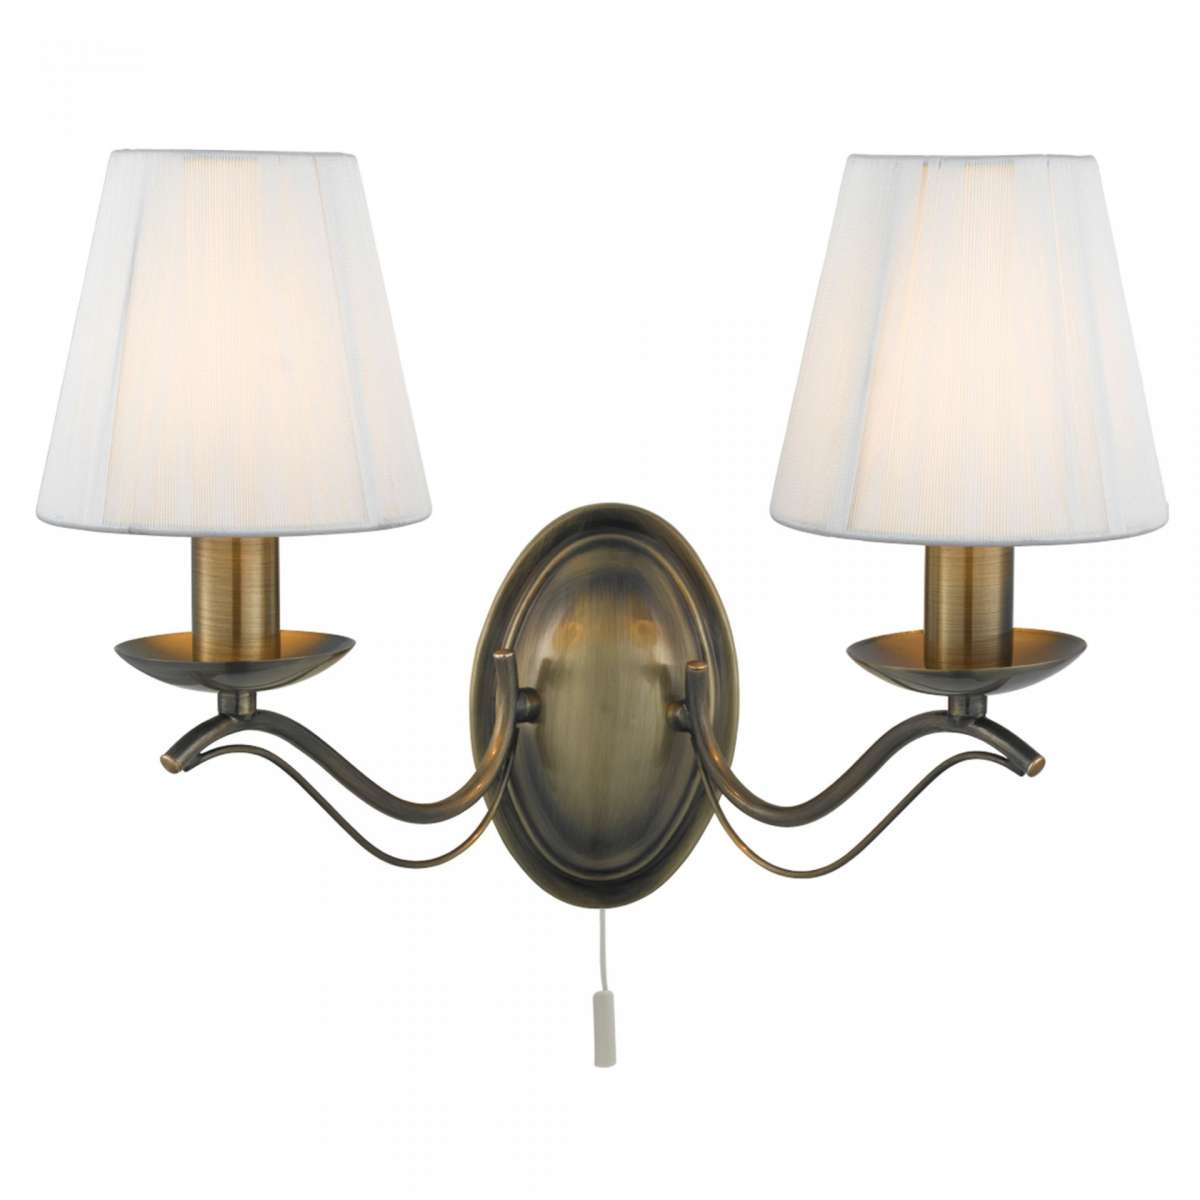 Andretti Antique Brass 2 Light Wall Light with Cream String Shades